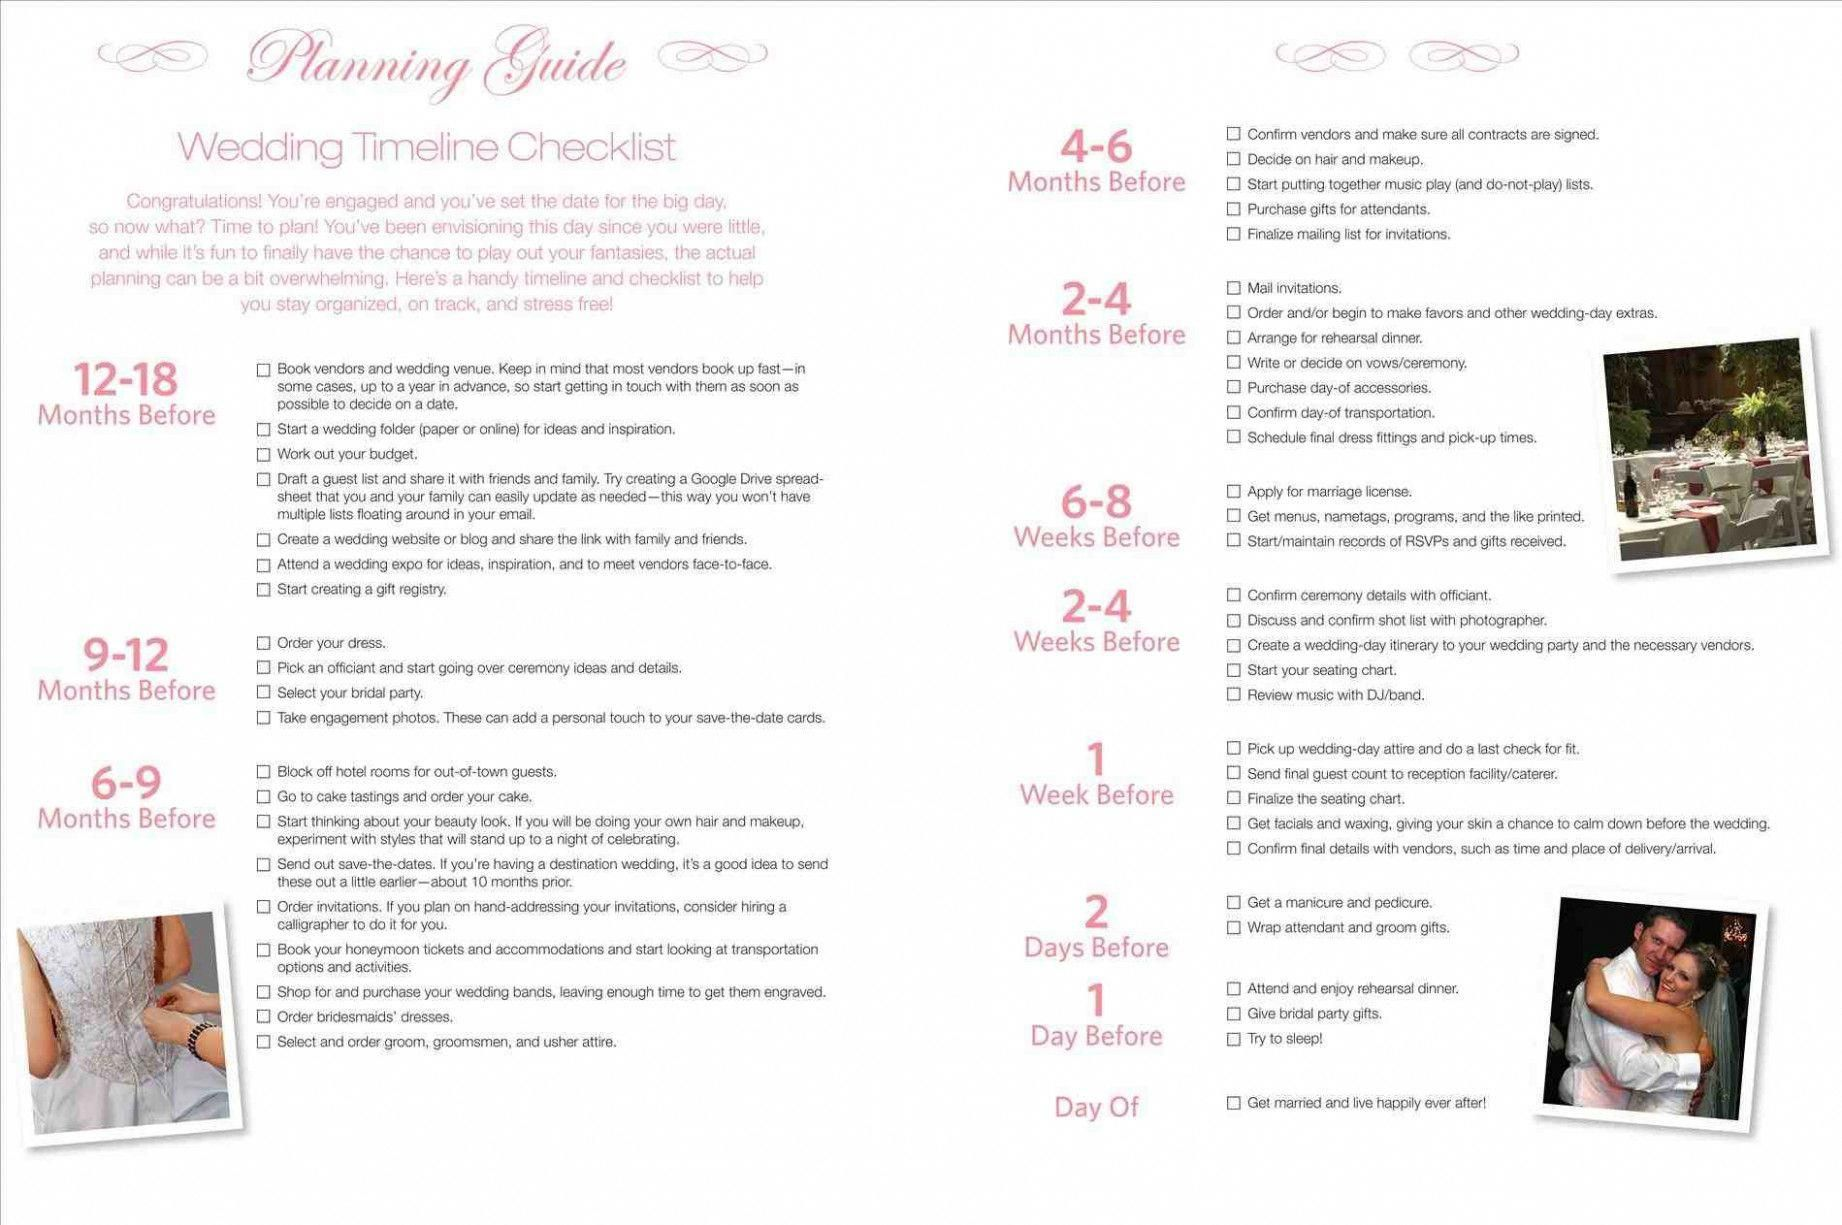 click image find more checklist wedding planning timeline the knot